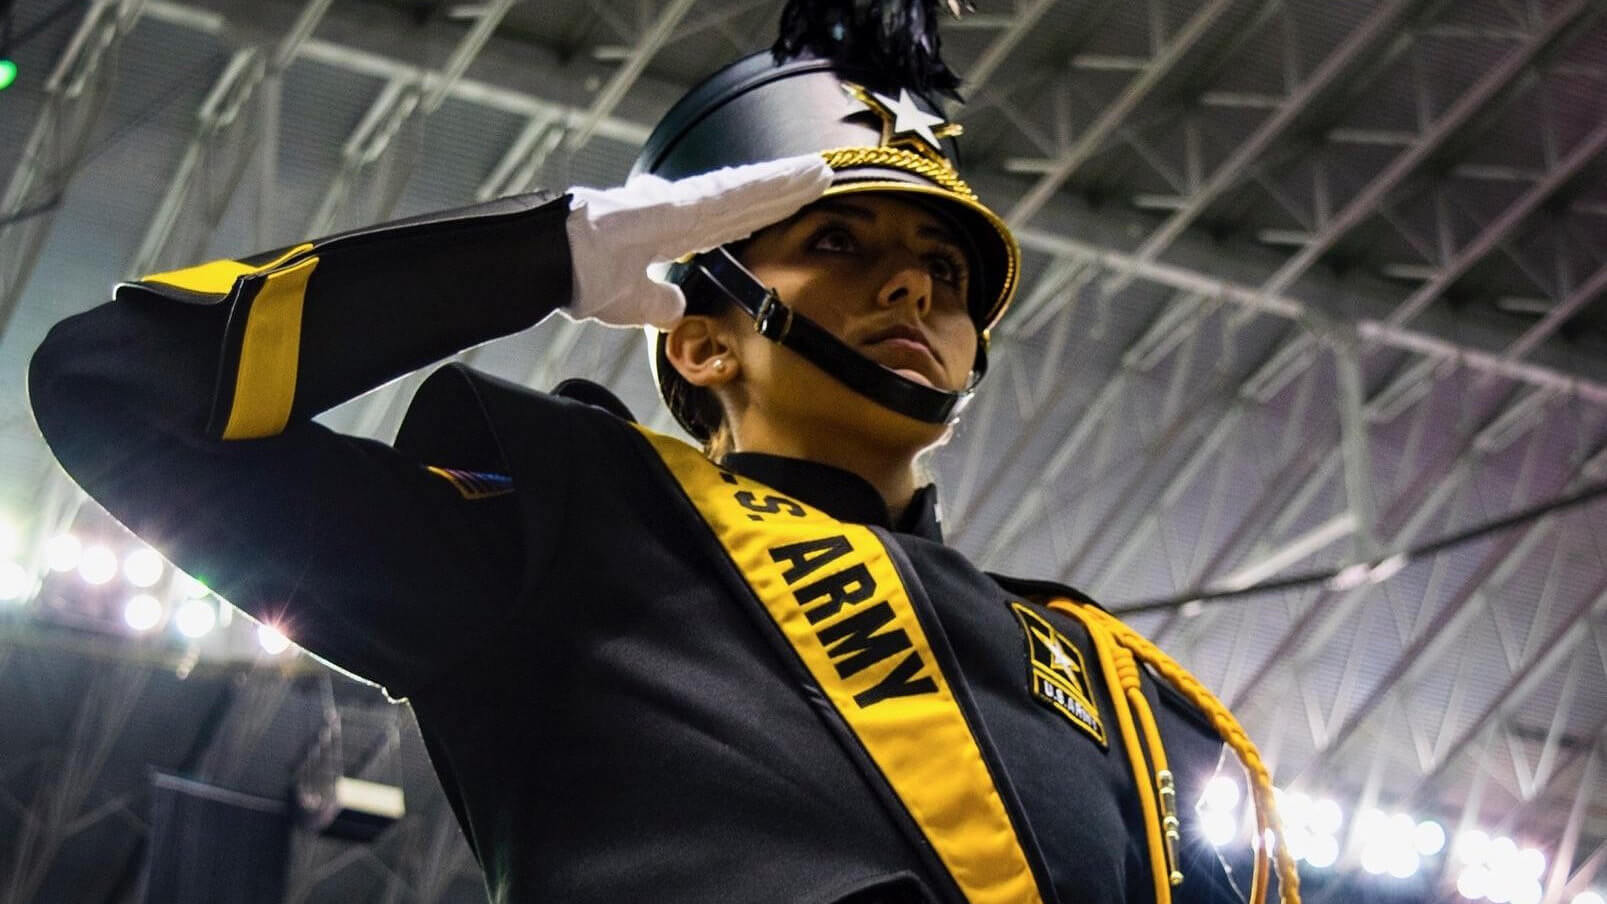 Watch the performance of the 2017 USAAAMB